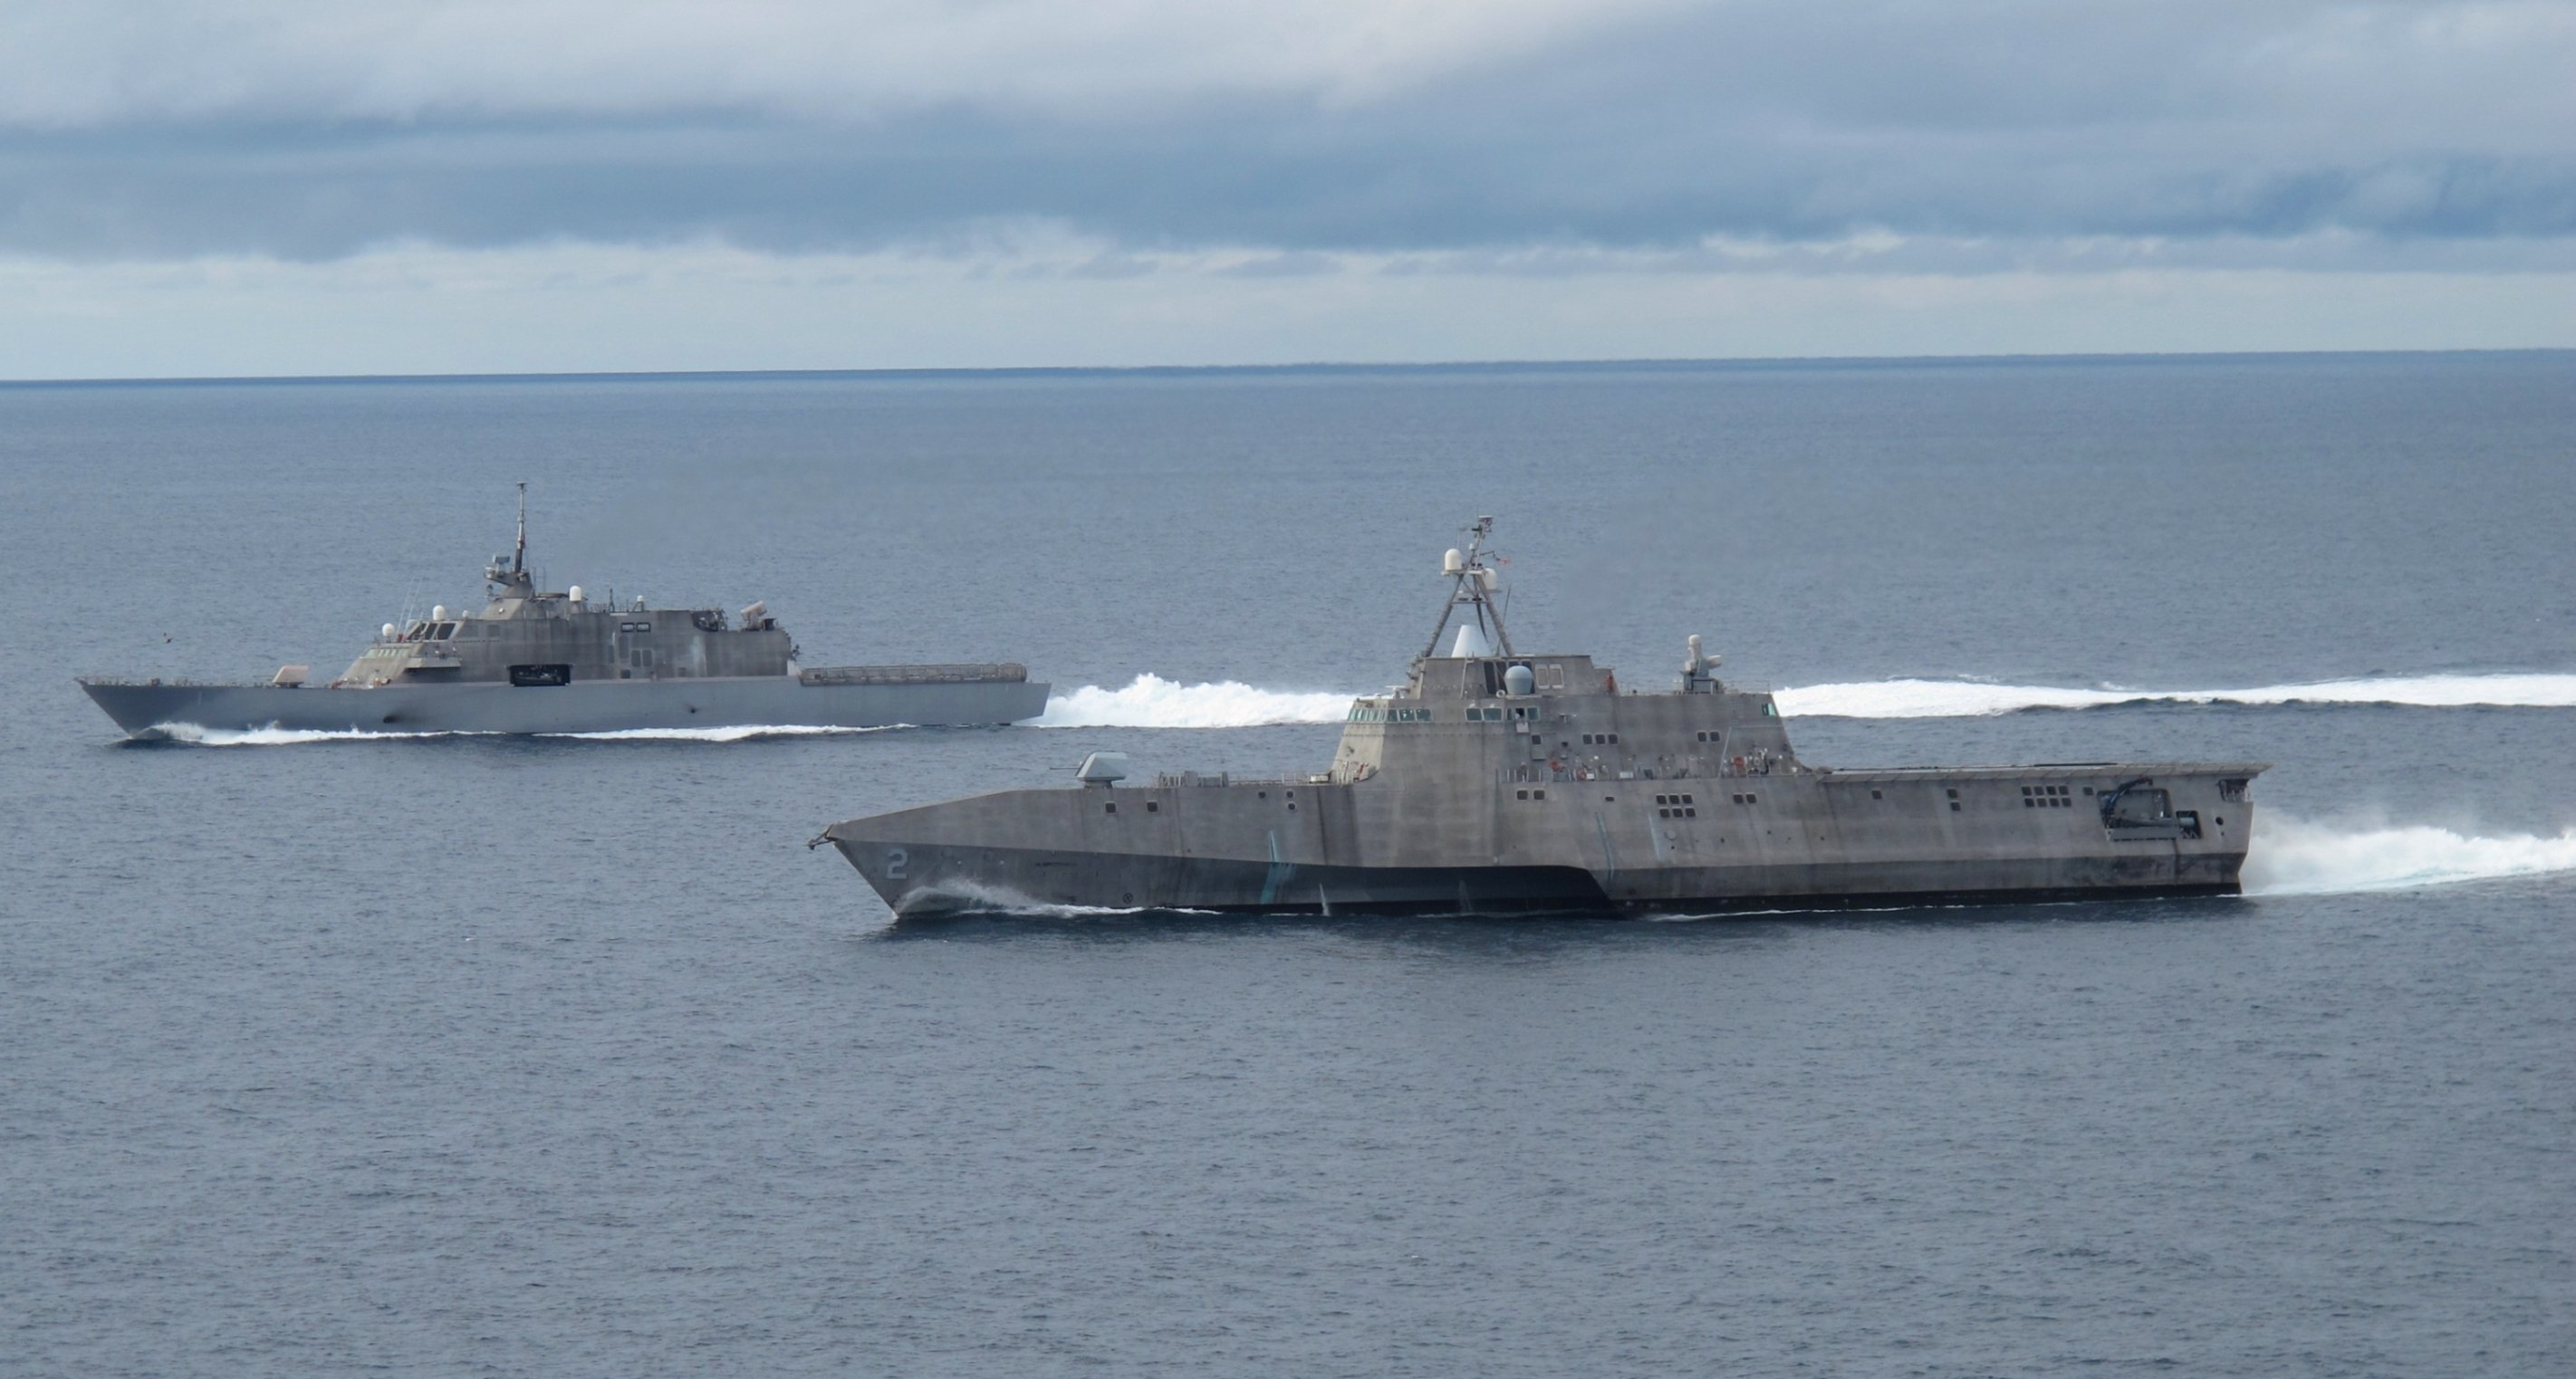 USS Freedom (LCS-1), left, and USS Independence (LCS-2) in 2012. US Navy Photo